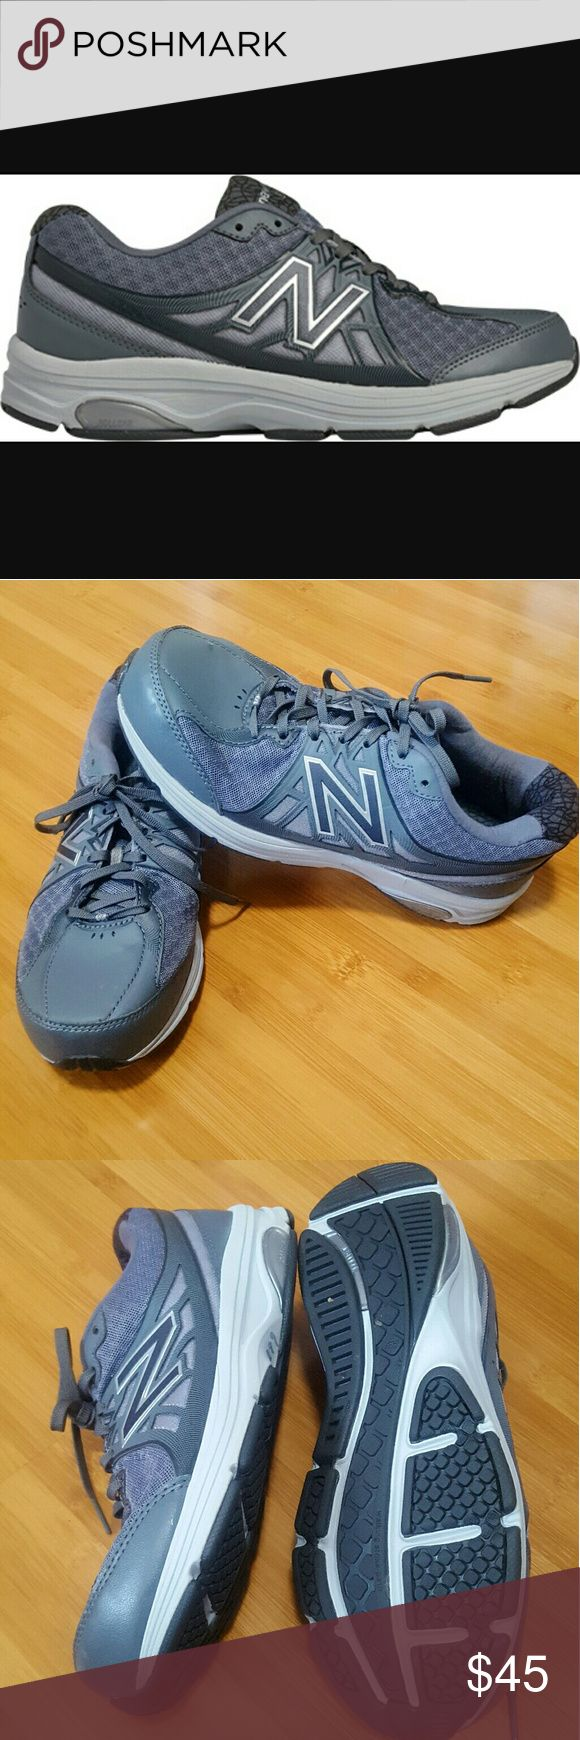 New Balance walking shoes 847v2 size 8.5 Gray New Balance walking shoes size 8.5. Model 847v2. Worn only once. Like new condition. New Balance Shoes Athletic Shoes